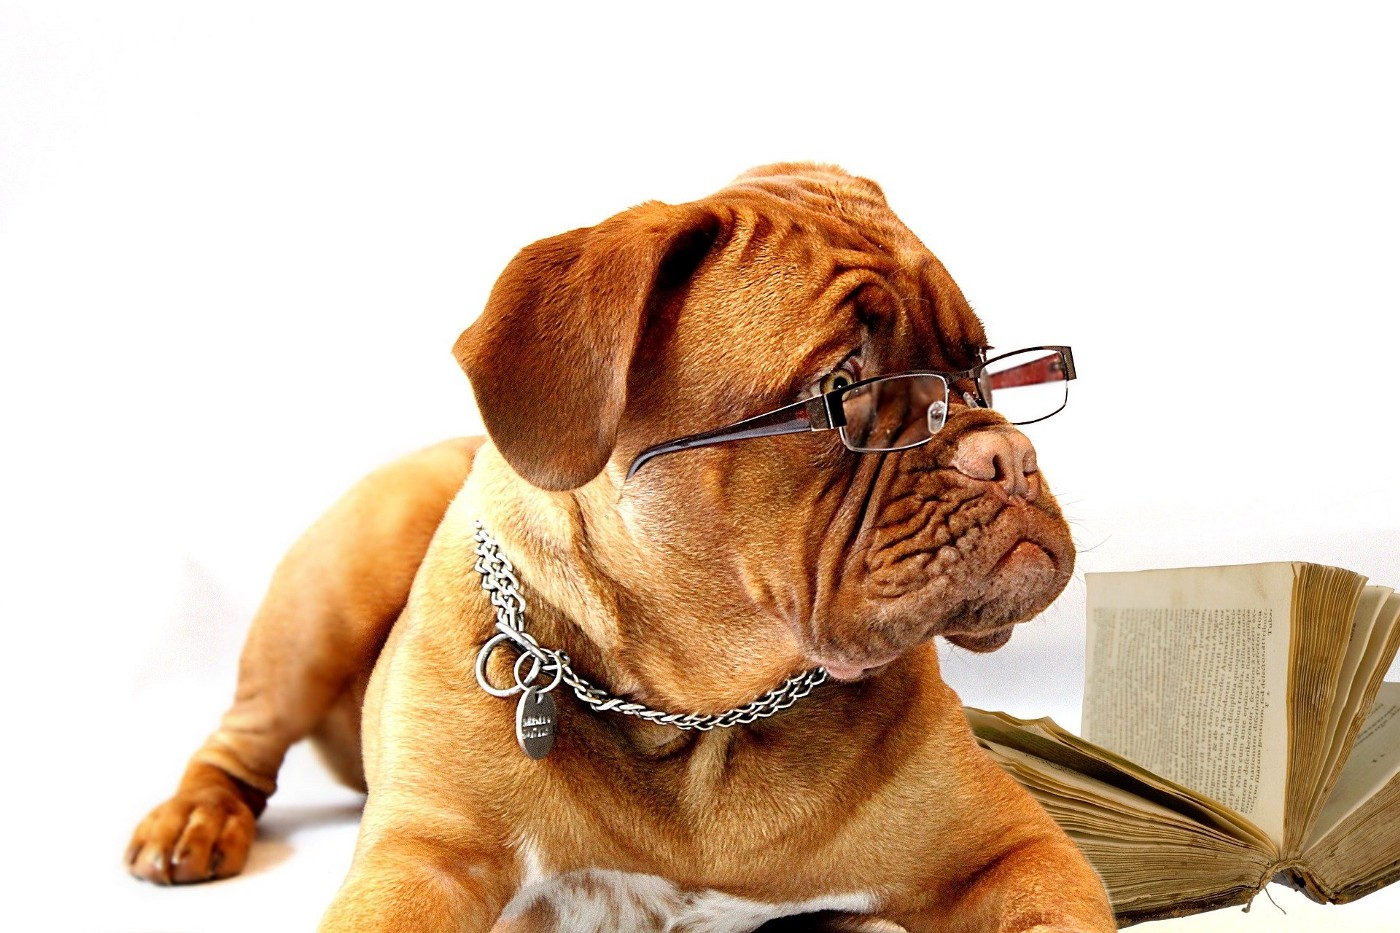 Dog wearing reading glasses with a book